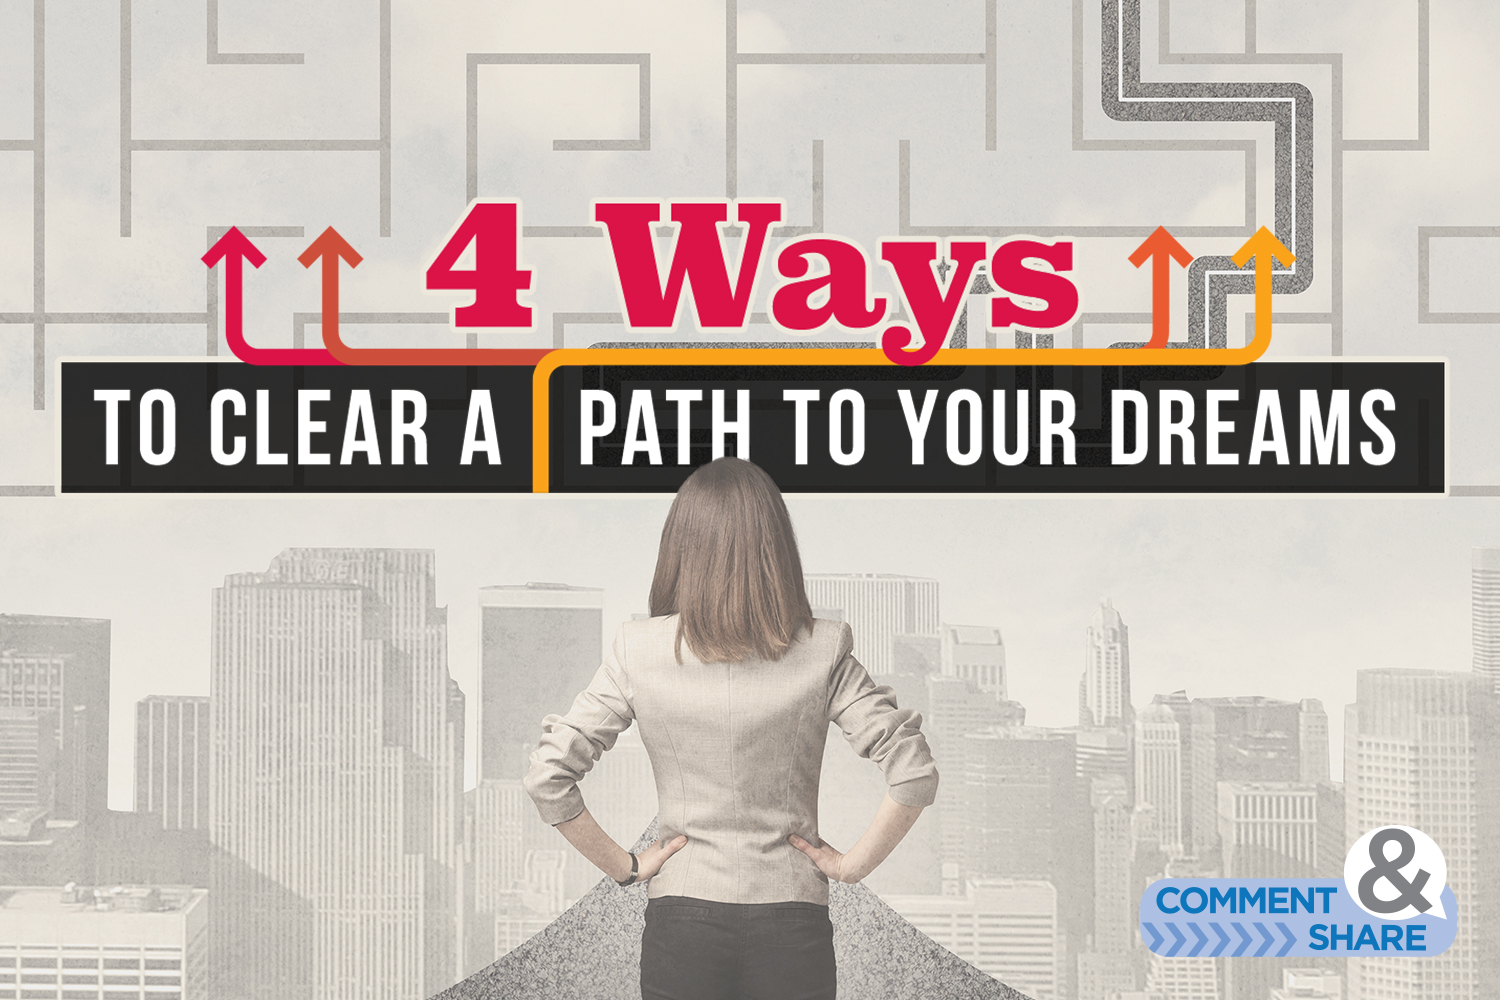 4 Ways to Clear a Path to Your Dreams